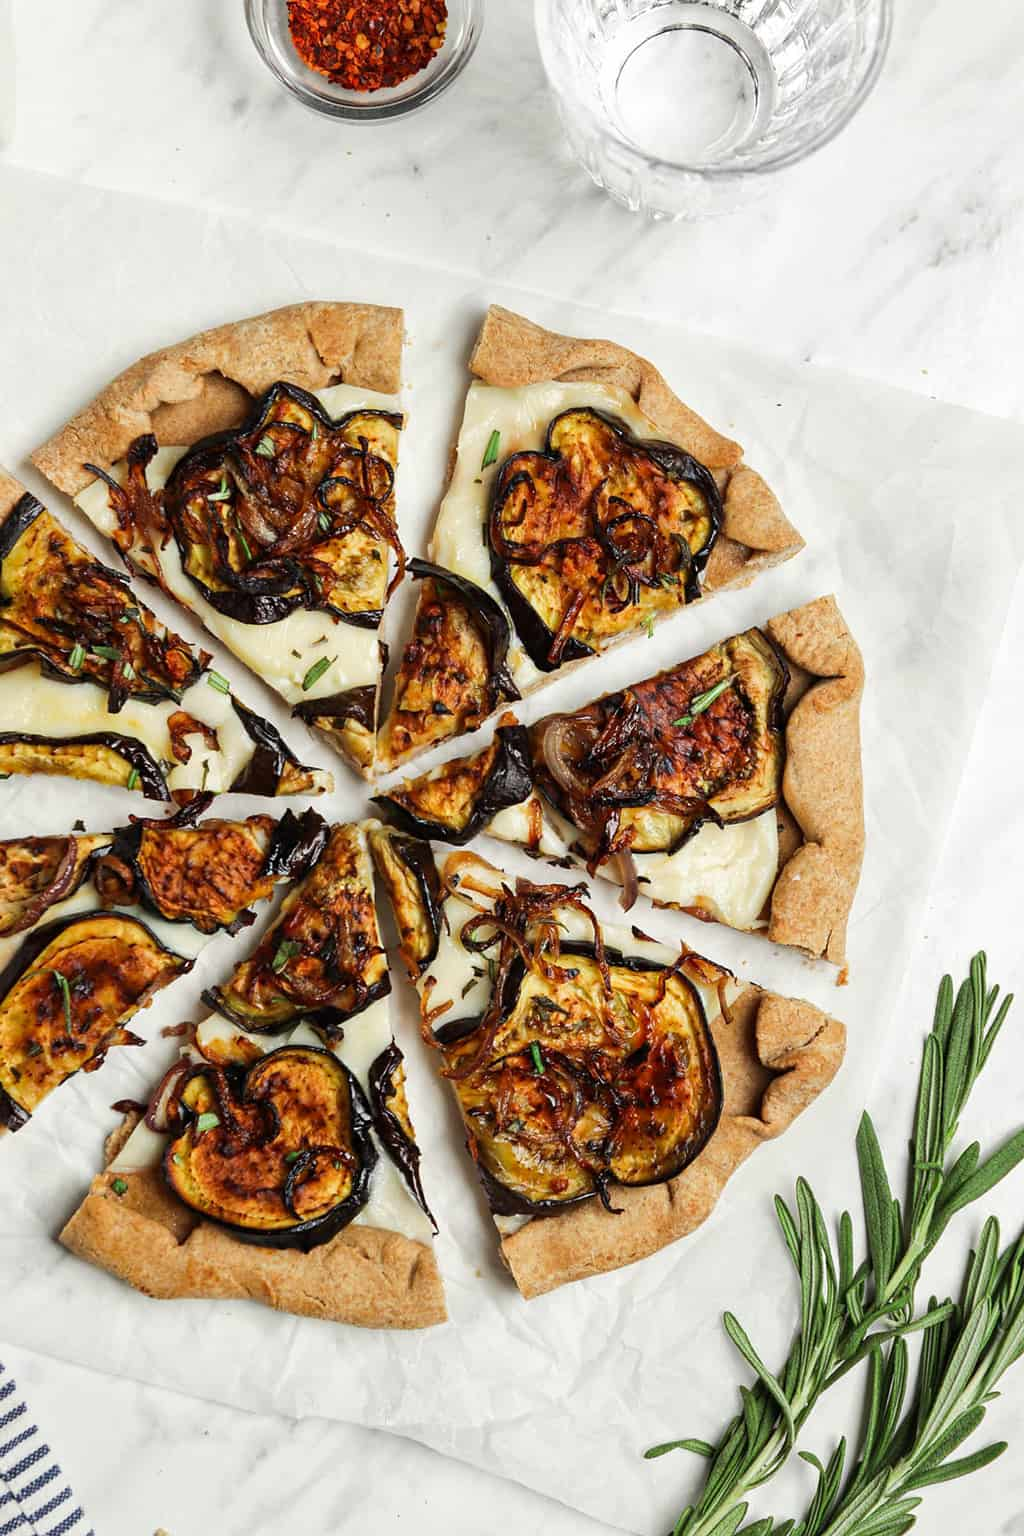 top view of pizza with roasted eggplant